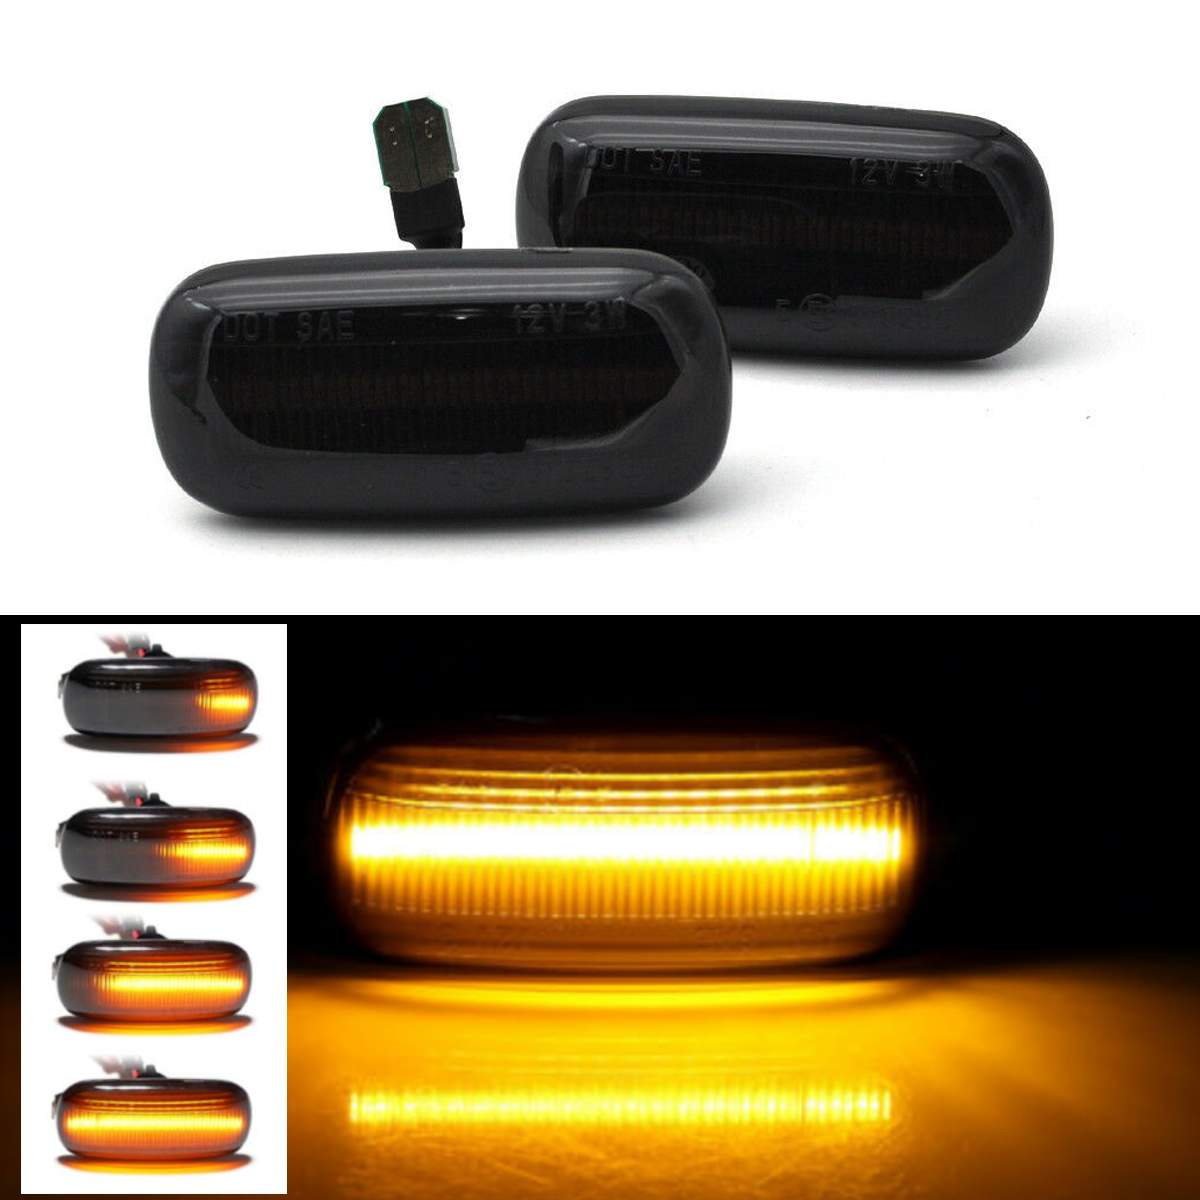 2pcs Dynamic LED Side Marker Turn Signal Light Black/White Color Blinker Light for Audi A3 8P A4 S4 RS4 B6 B7 A6 C5 TT A8 C5